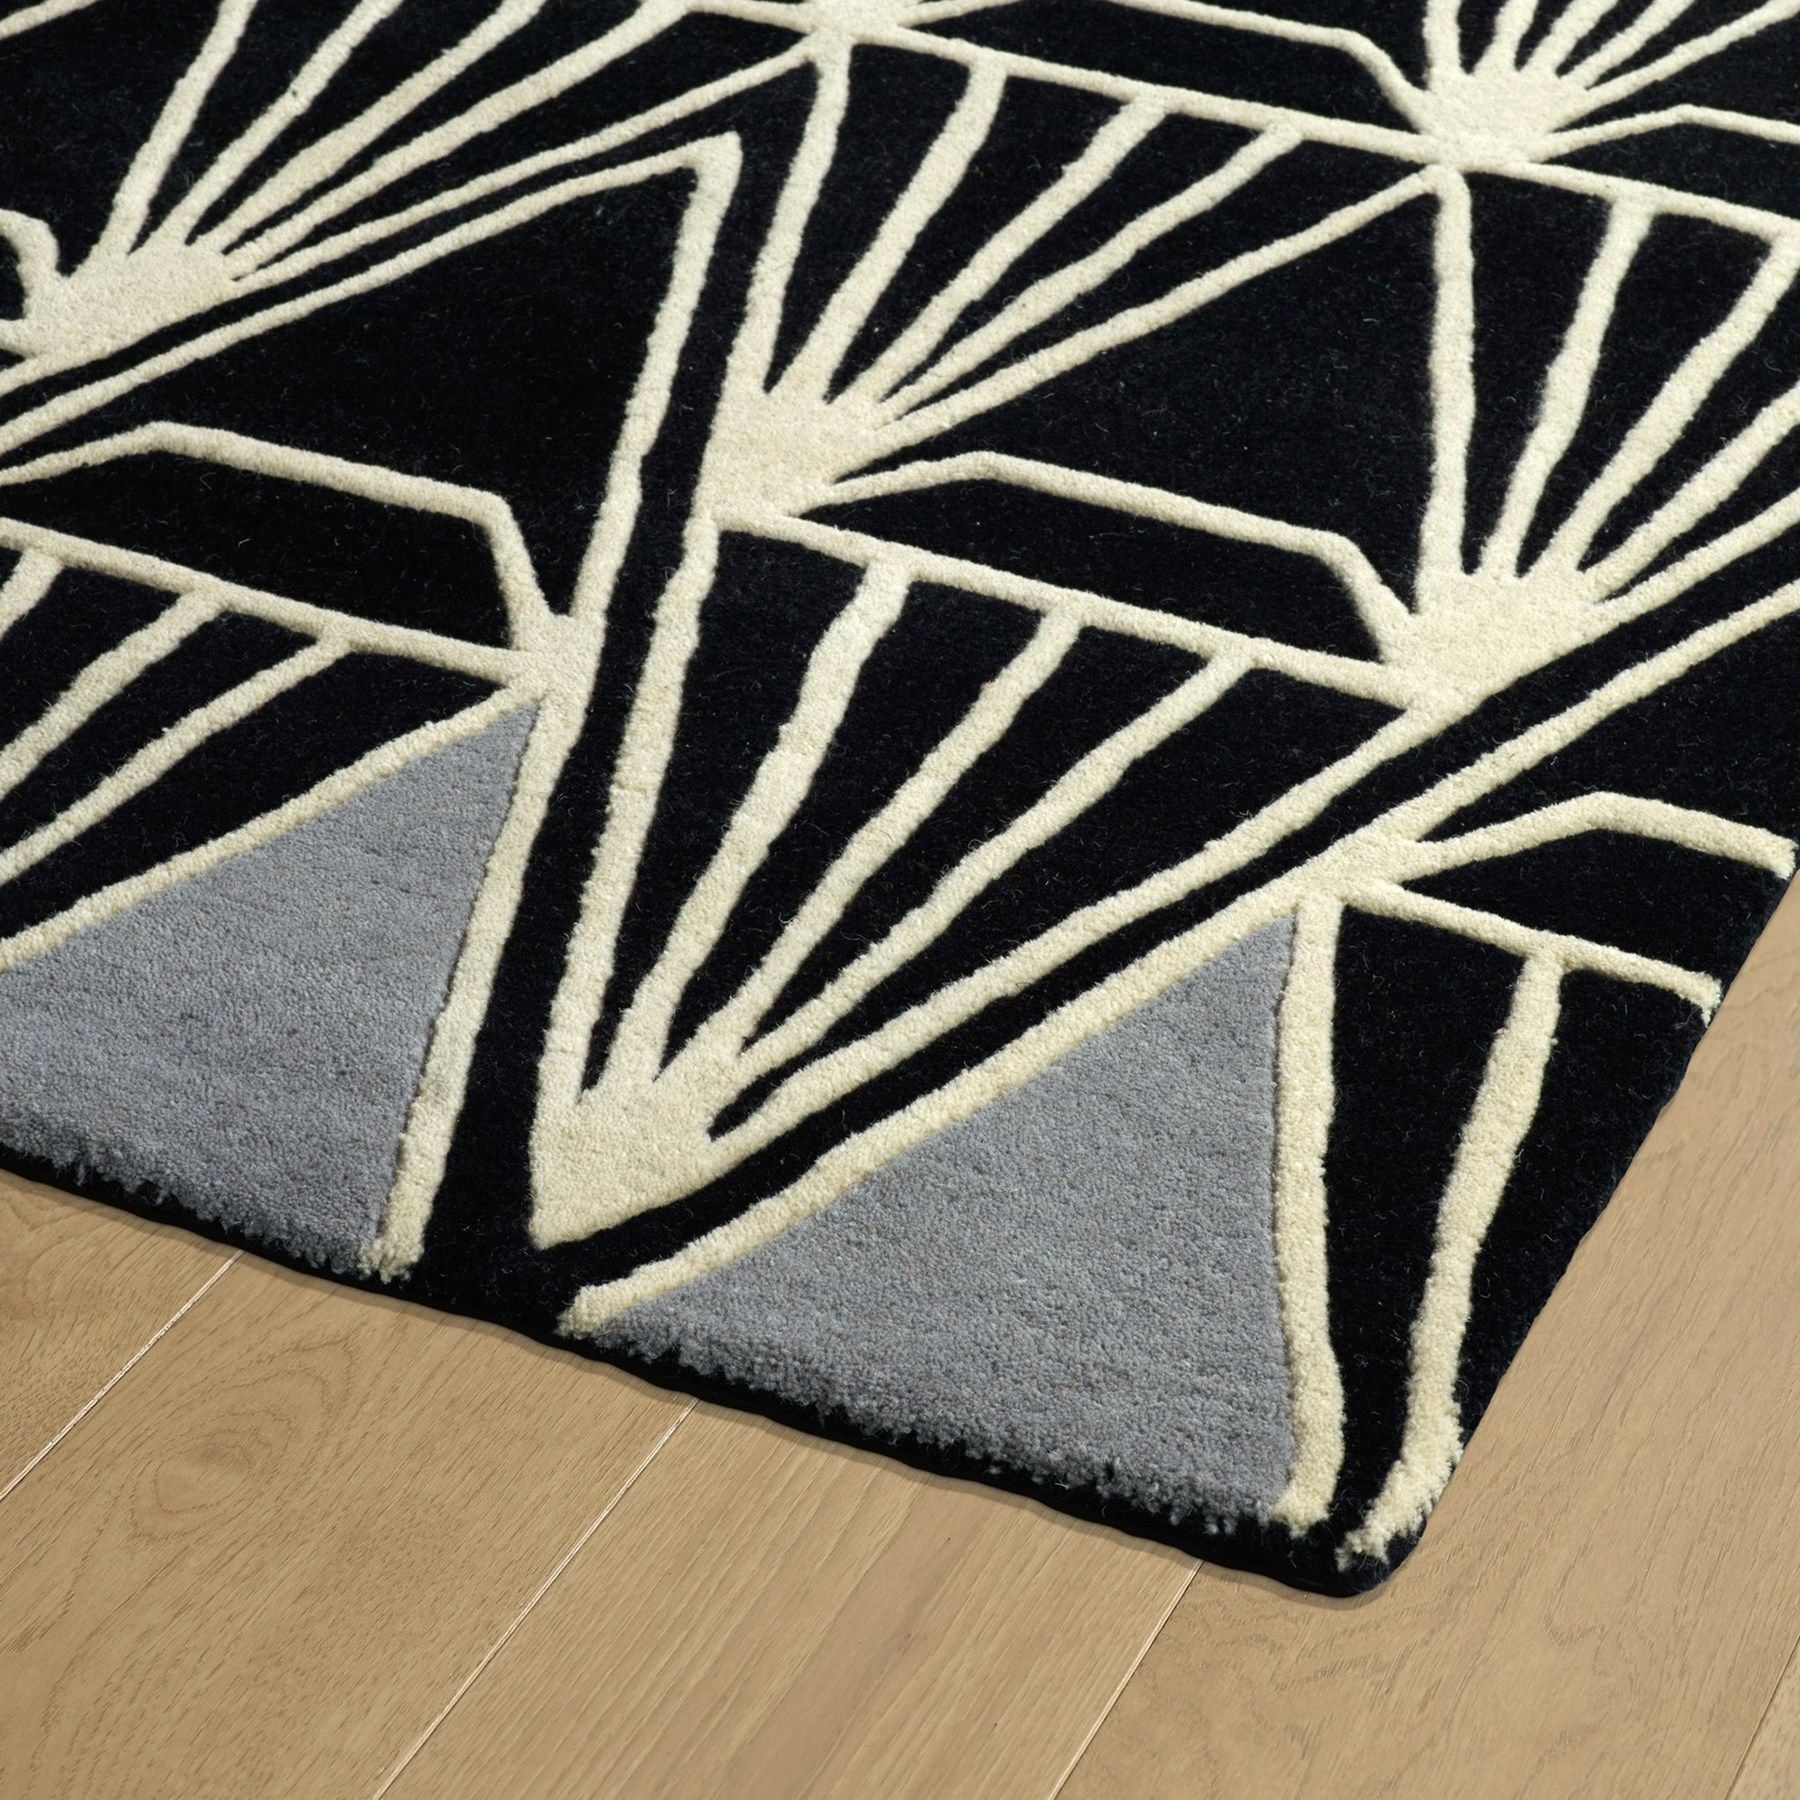 Org01 Color Black Size 3 6 X 5 3 Black Area Rugs Area Rugs Rugs